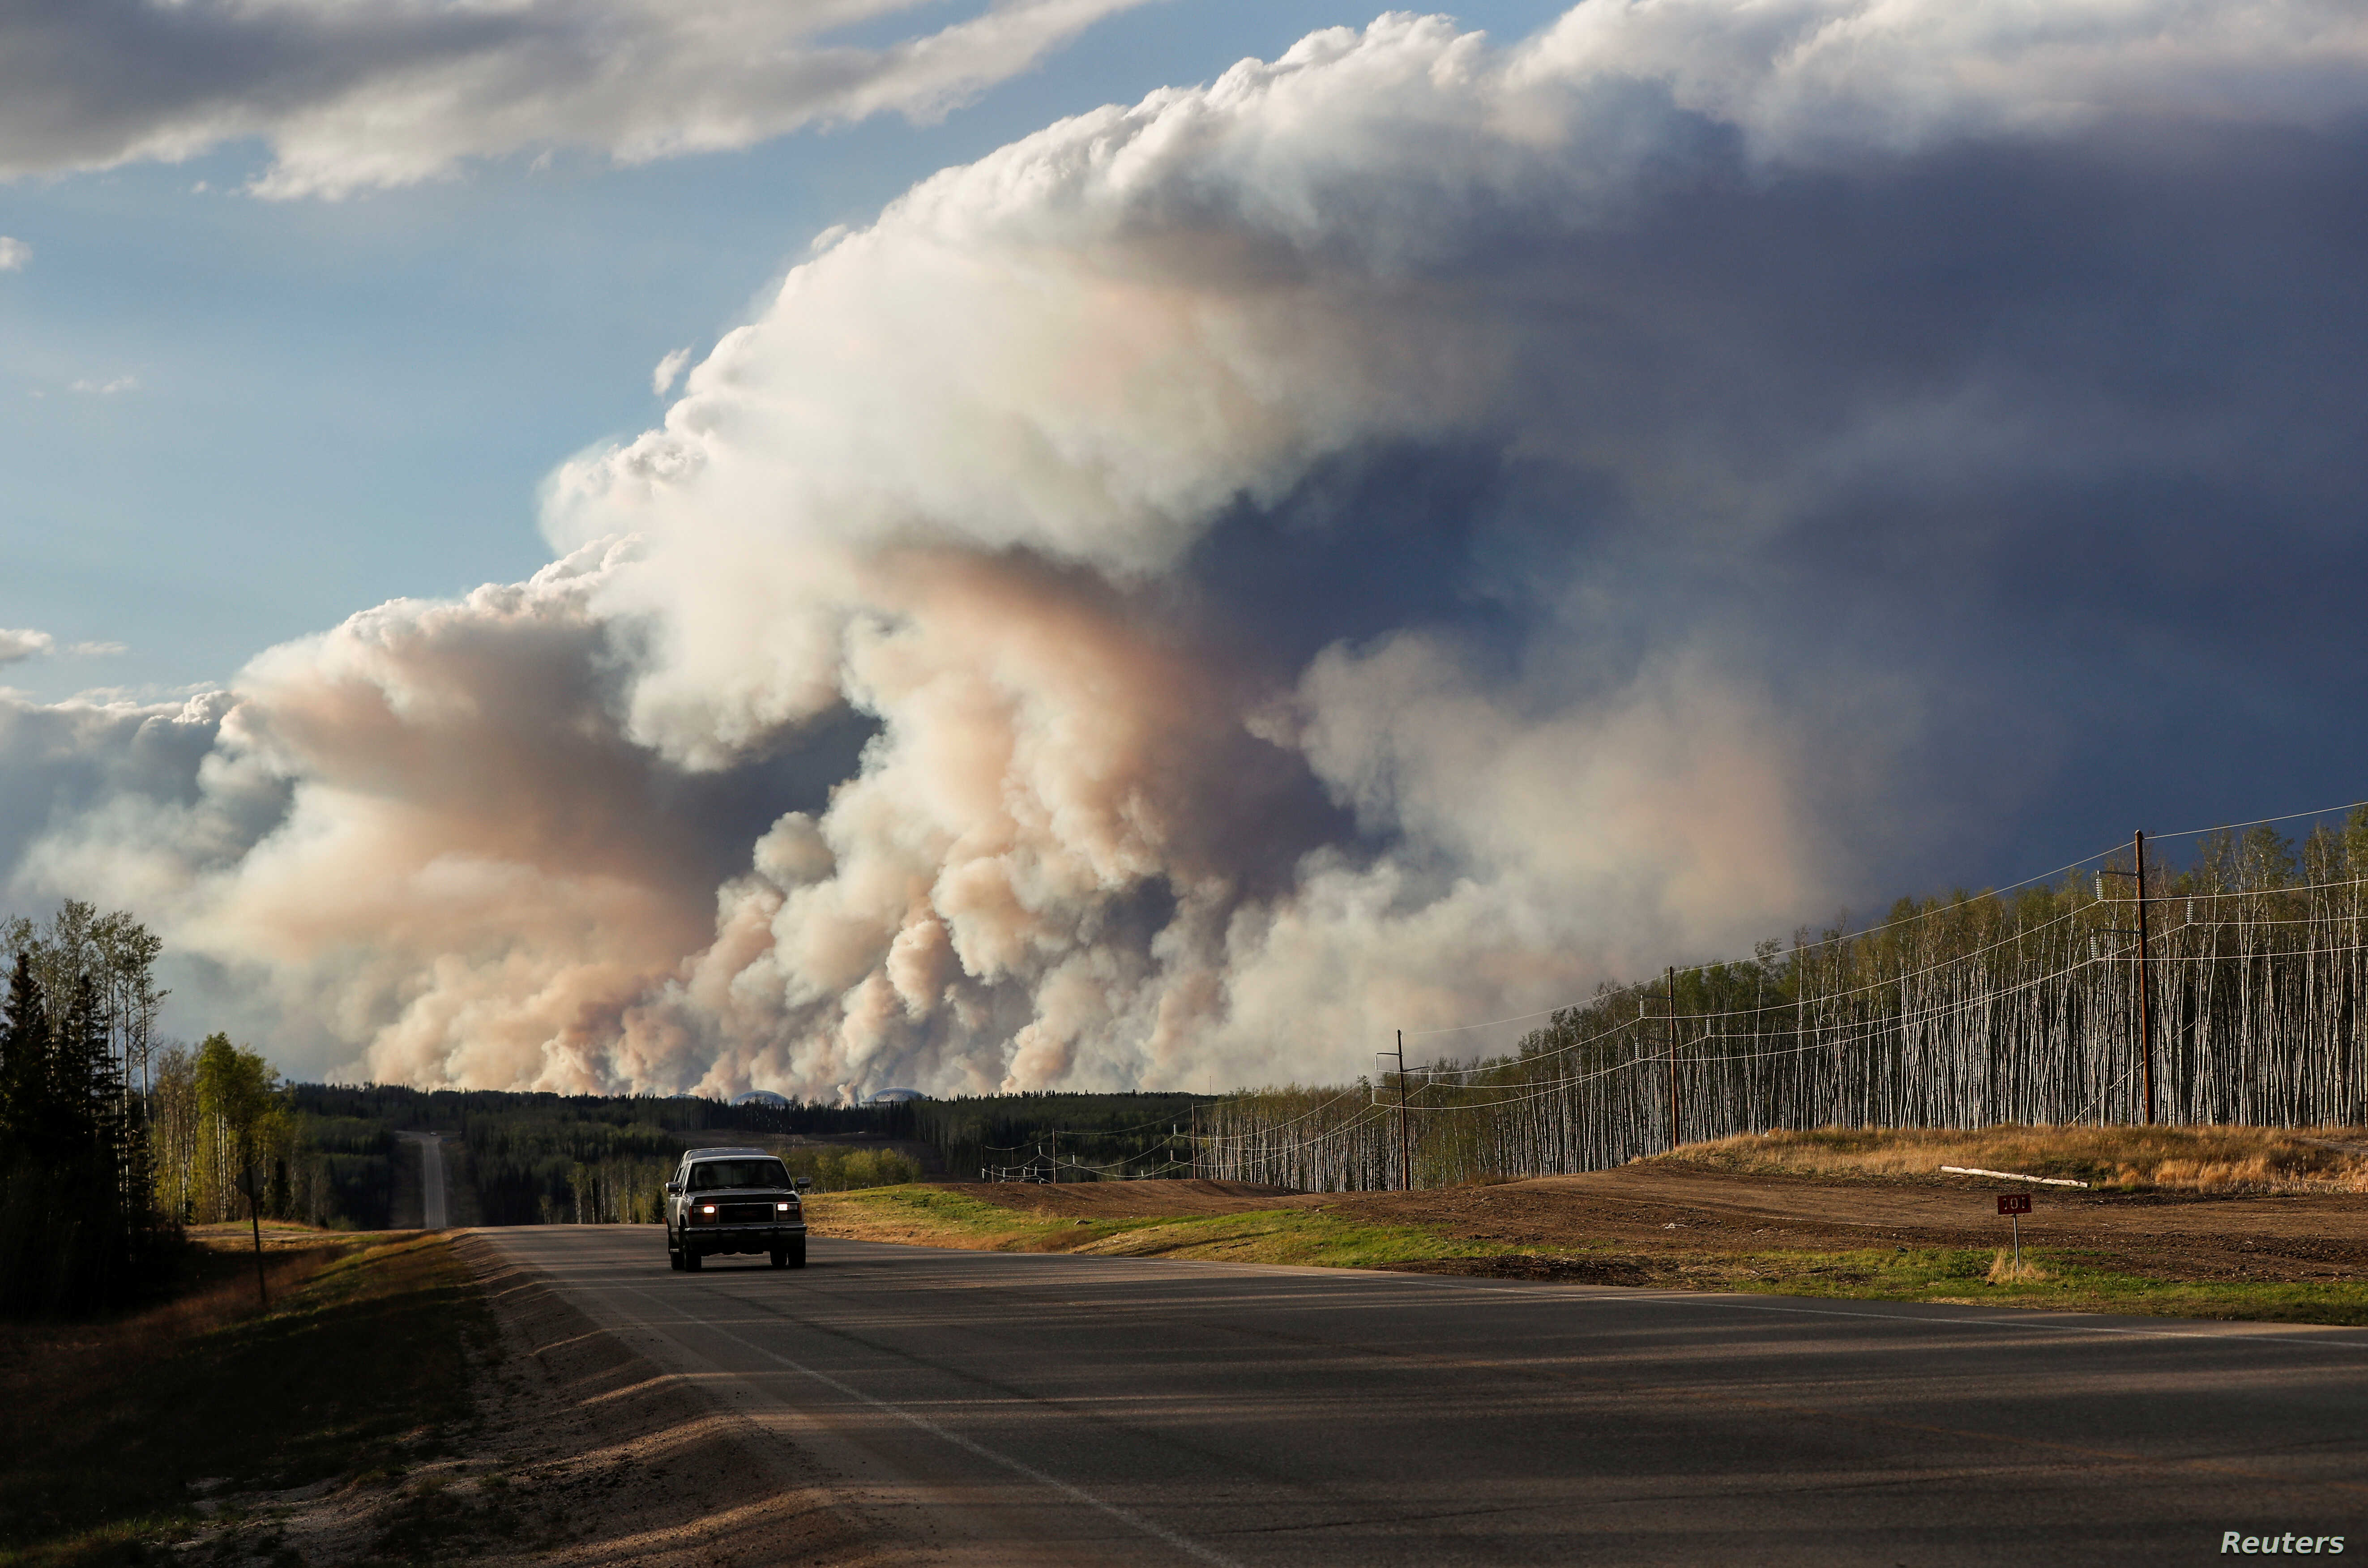 Smoke billows from the Fort McMurray wildfires as a truck drives down the highway in Kinosis, Alberta, Canada, May 5, 2016.